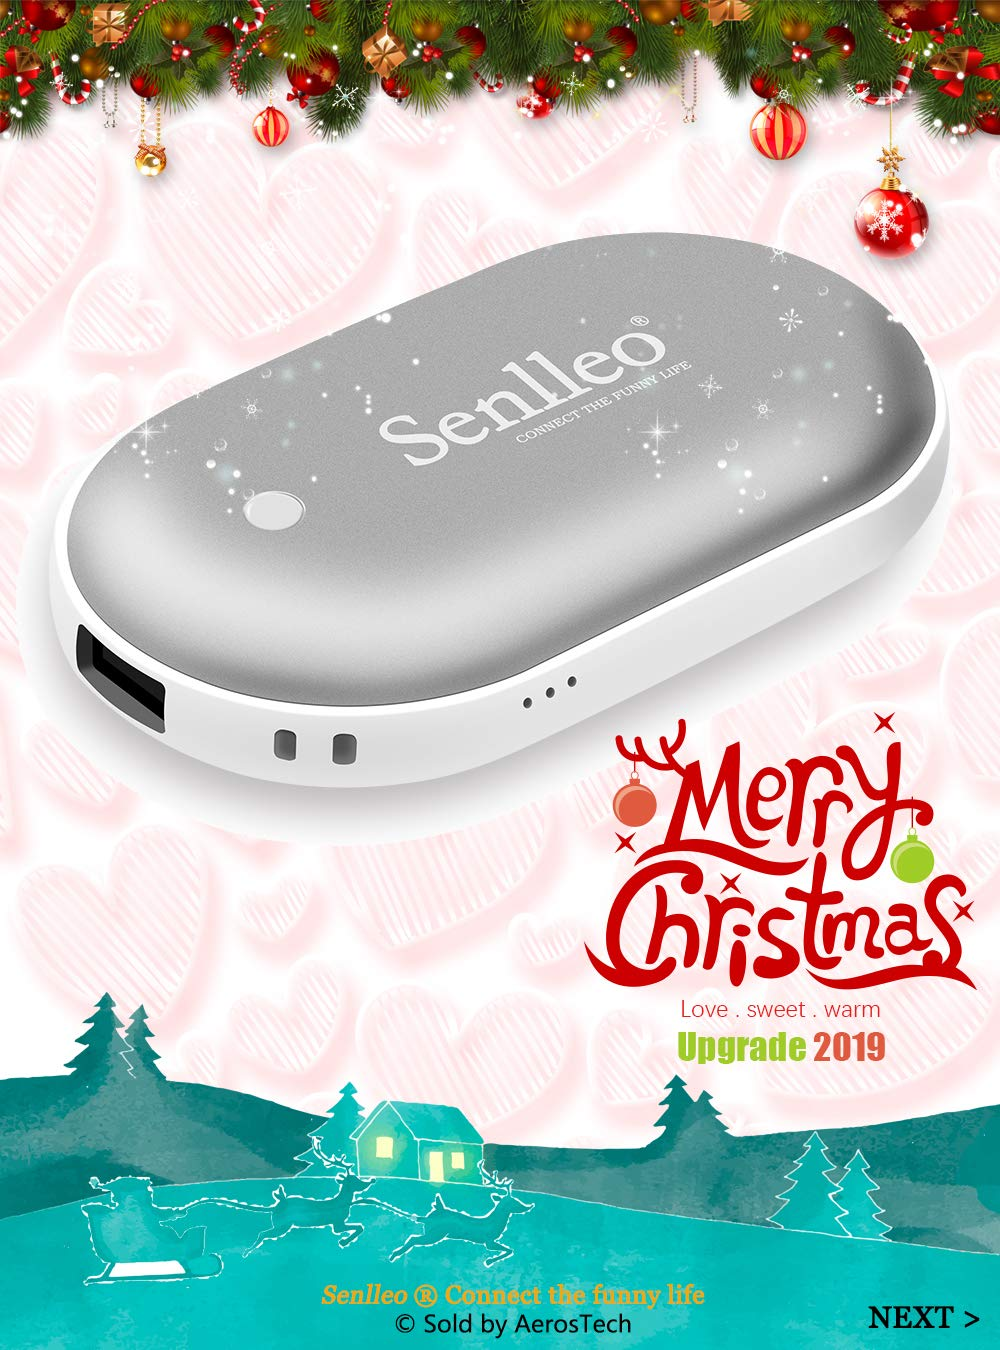 5200mAh Power Bank Larger Capacity and Double-Sided Pocket Warmer Compatible with iPad iPhone Samsung All Android Smartphone External Battery Charger Senlleo Rechargeable Hand Warmer